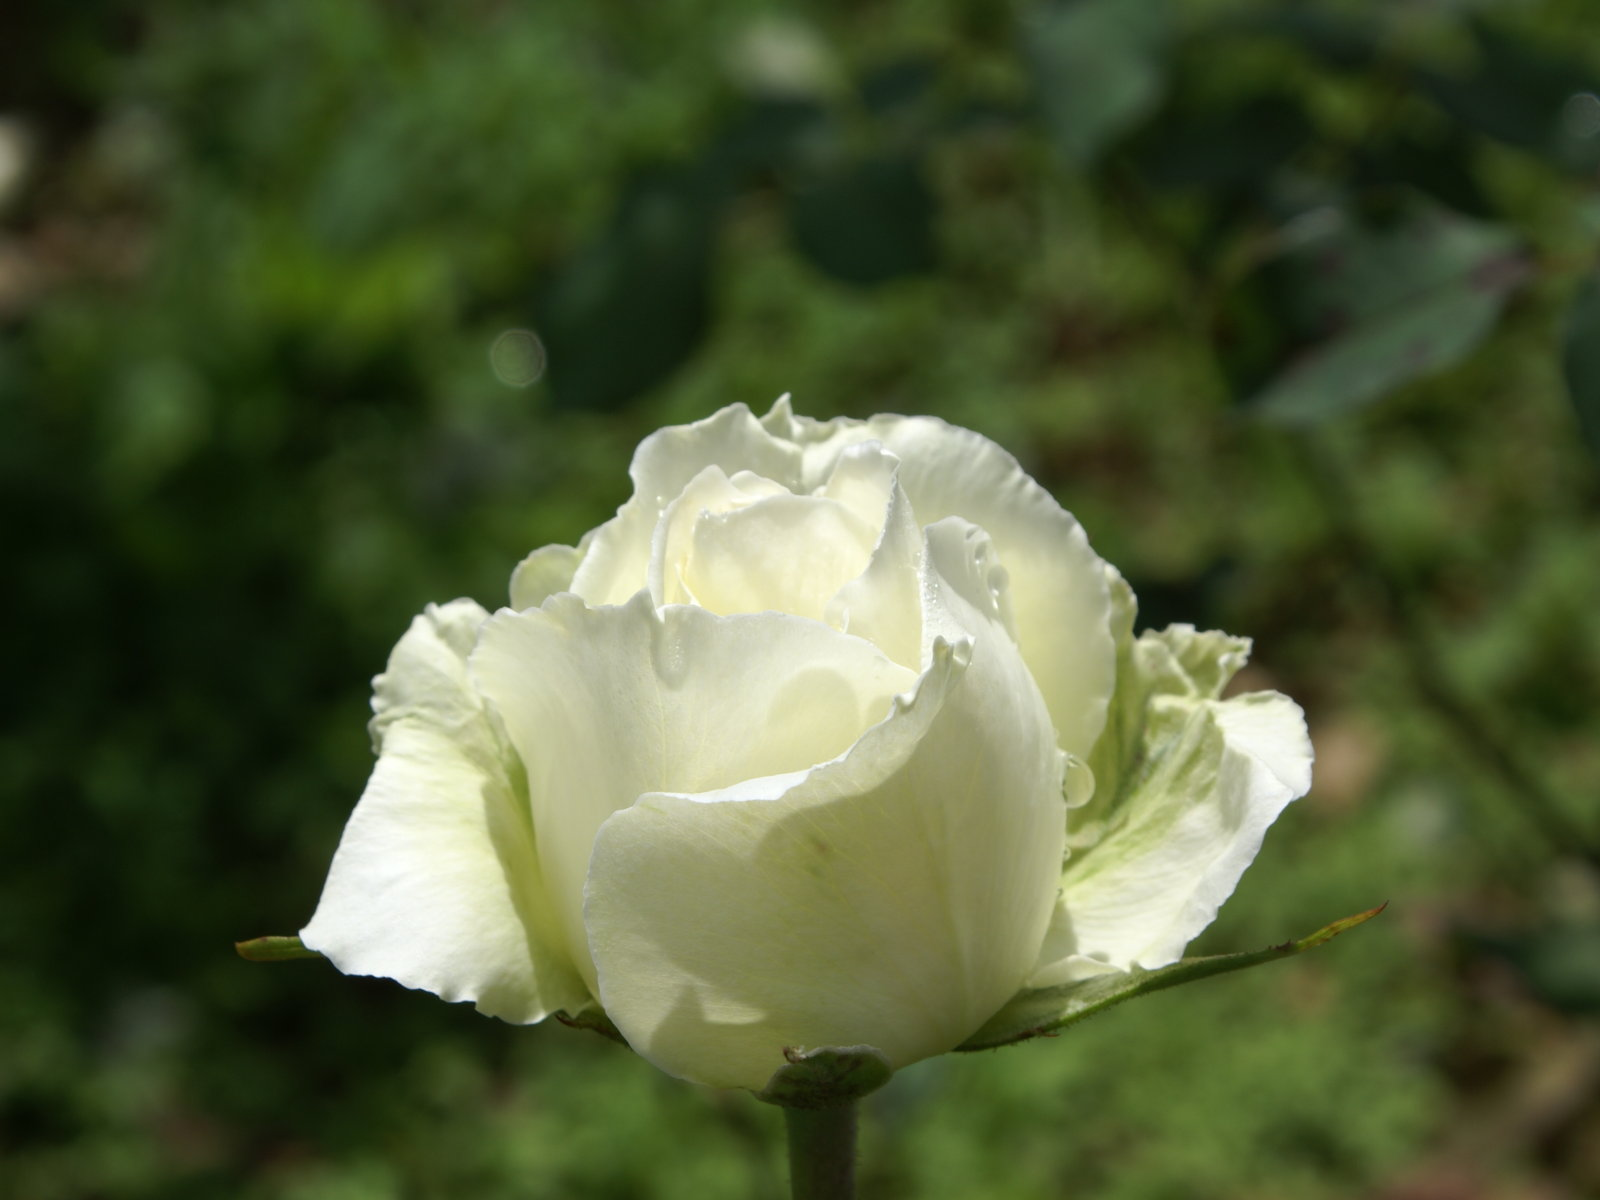 June's Birth Flower is the Rose